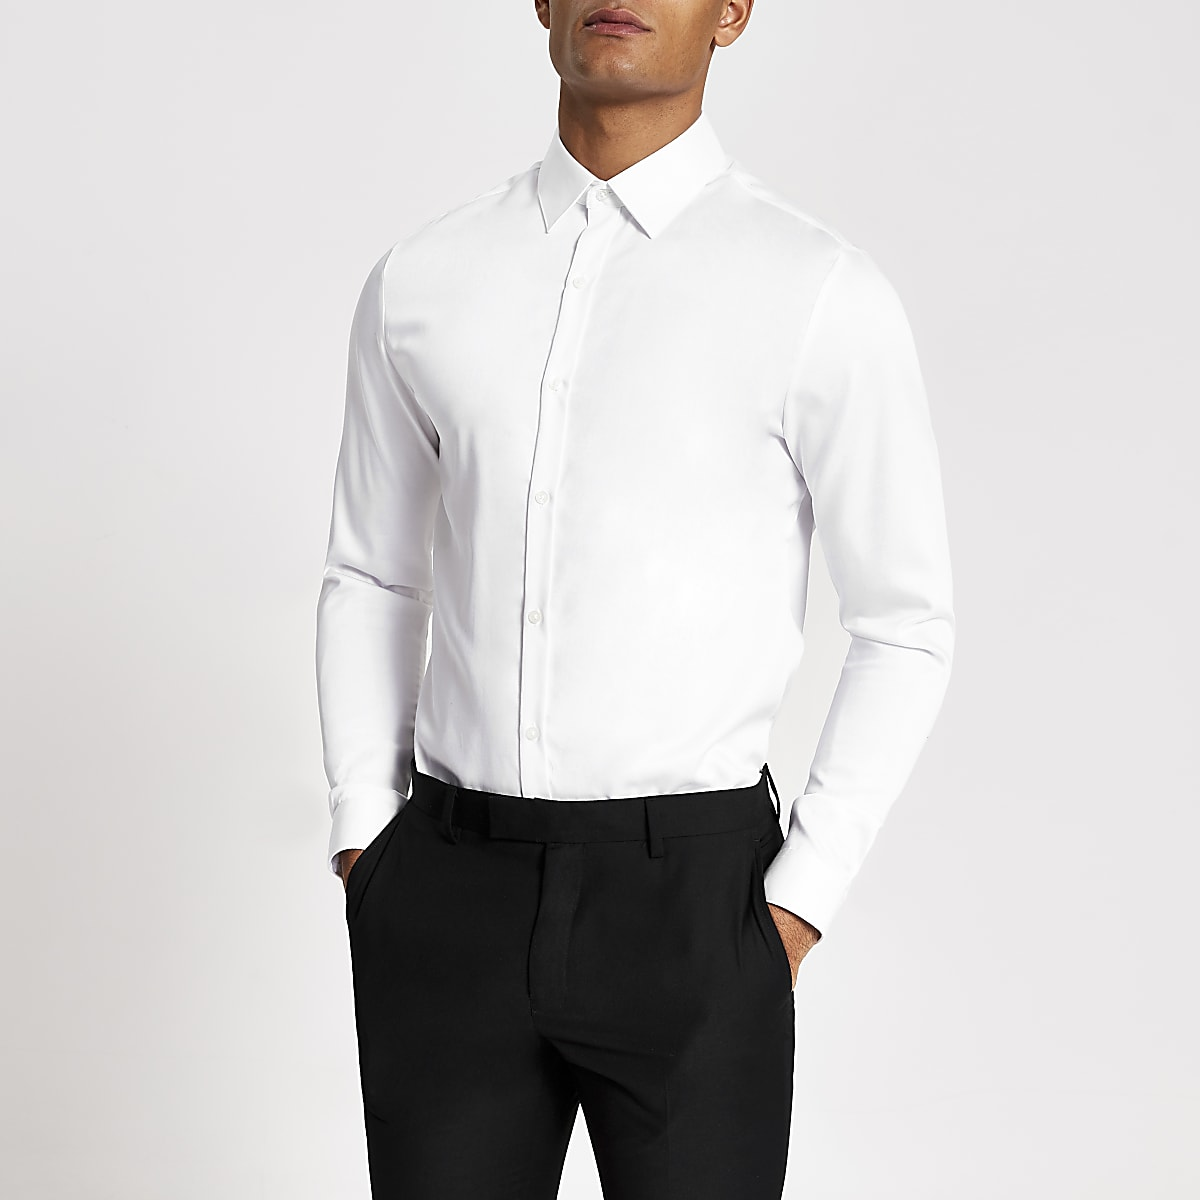 White premium cotton long sleeve shirt